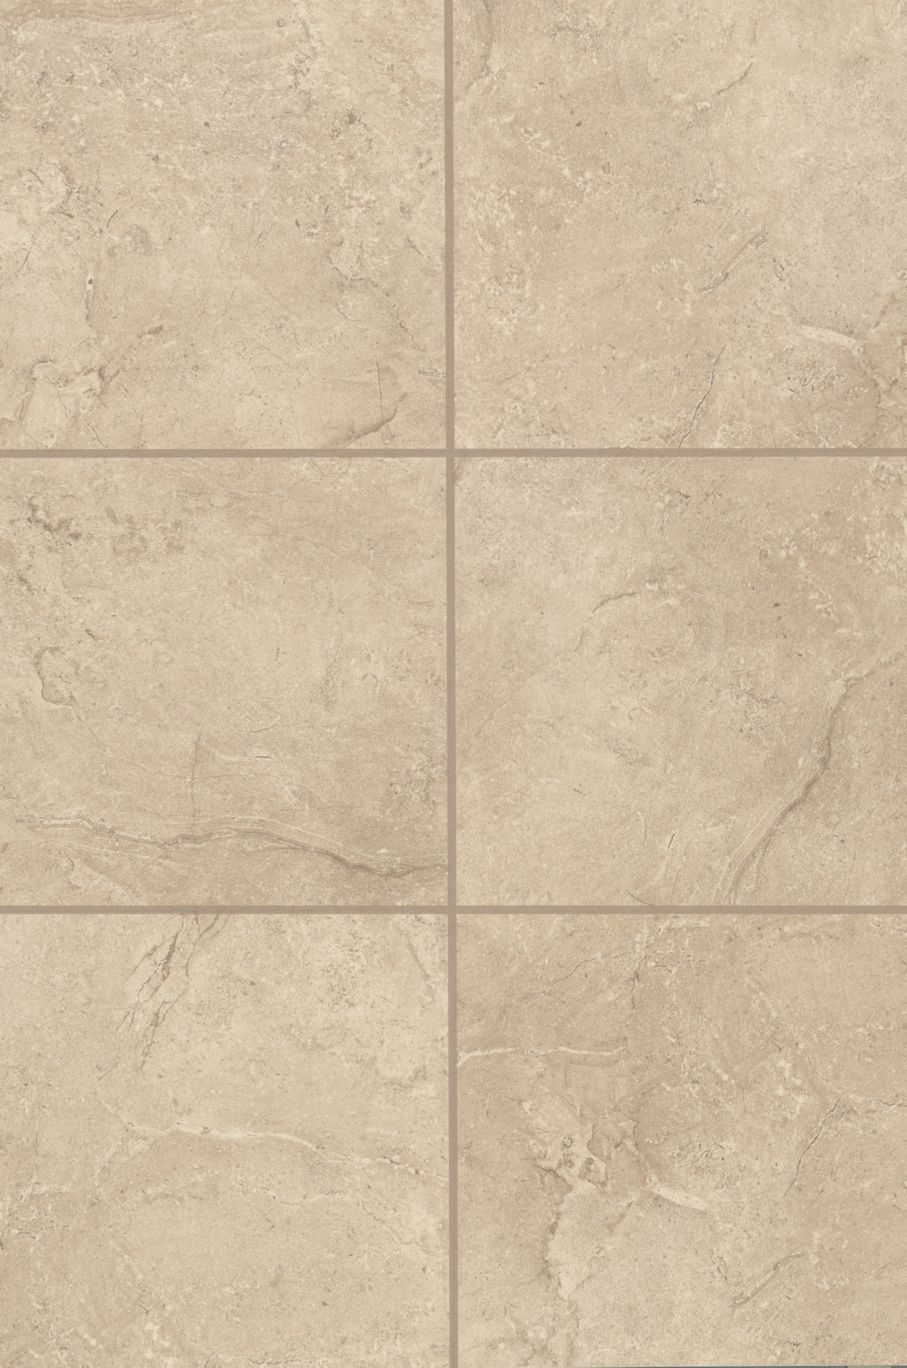 CeramicPorcelainTile Alvarita T783F-AV10 Sabbia